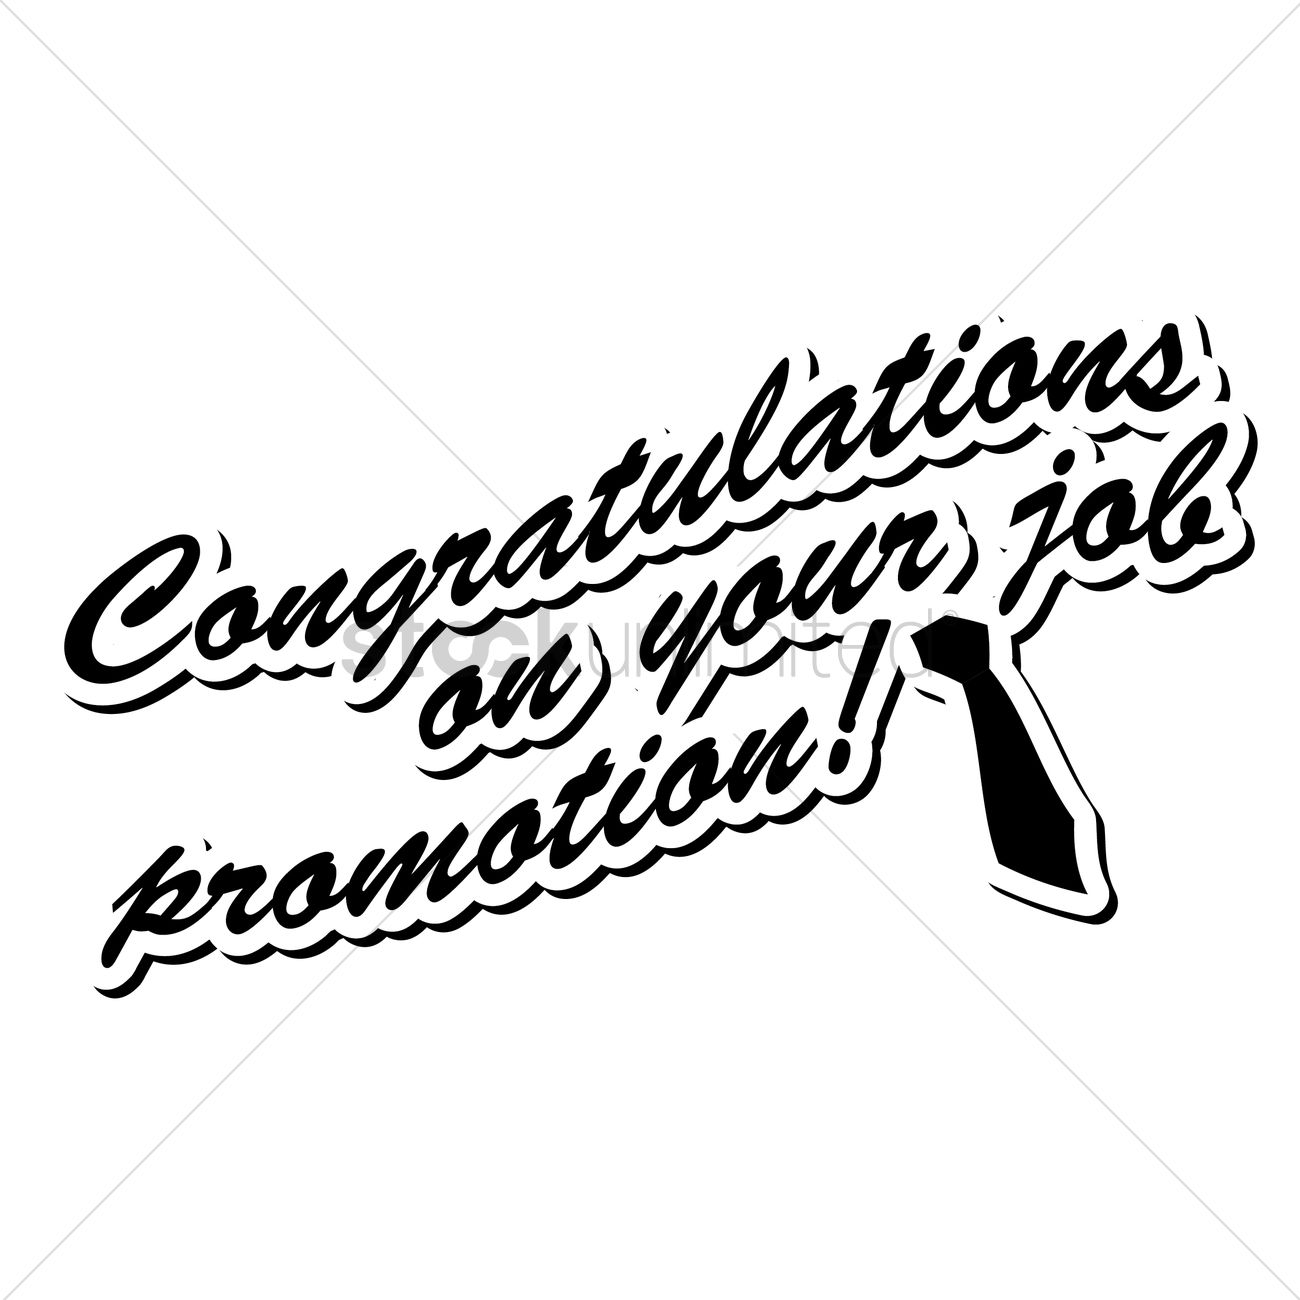 Congratulations promotion woman